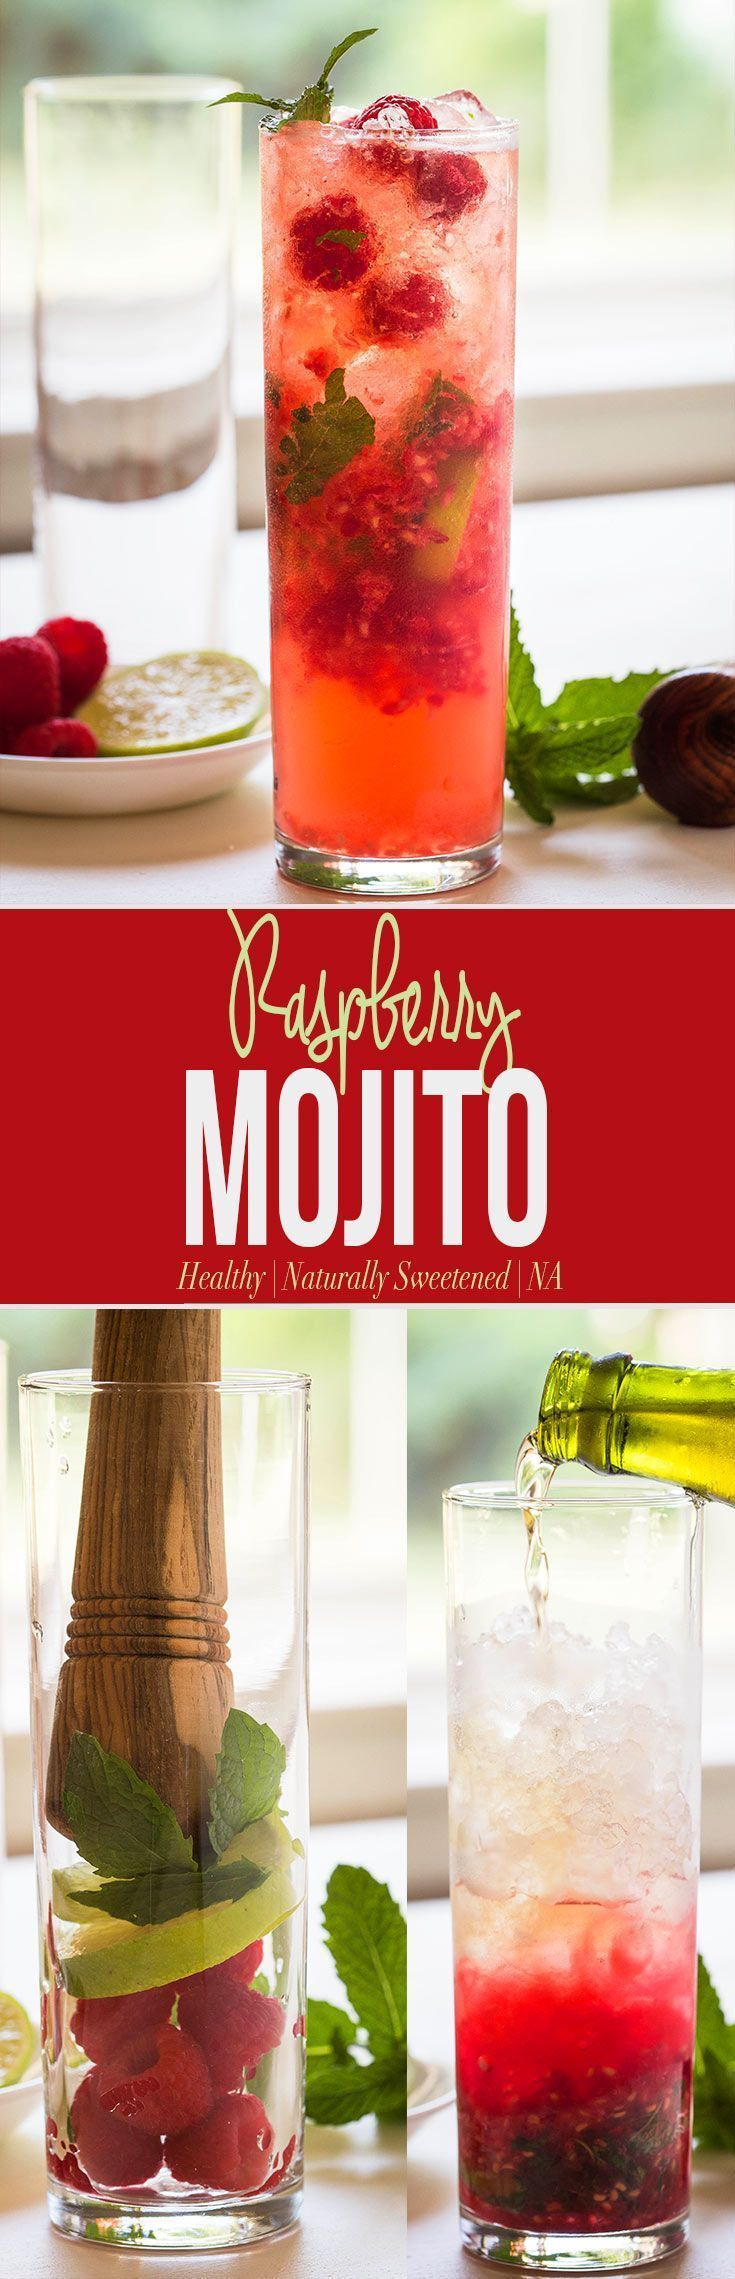 Healthy & Naturally Sweetened Raspberry Mojito